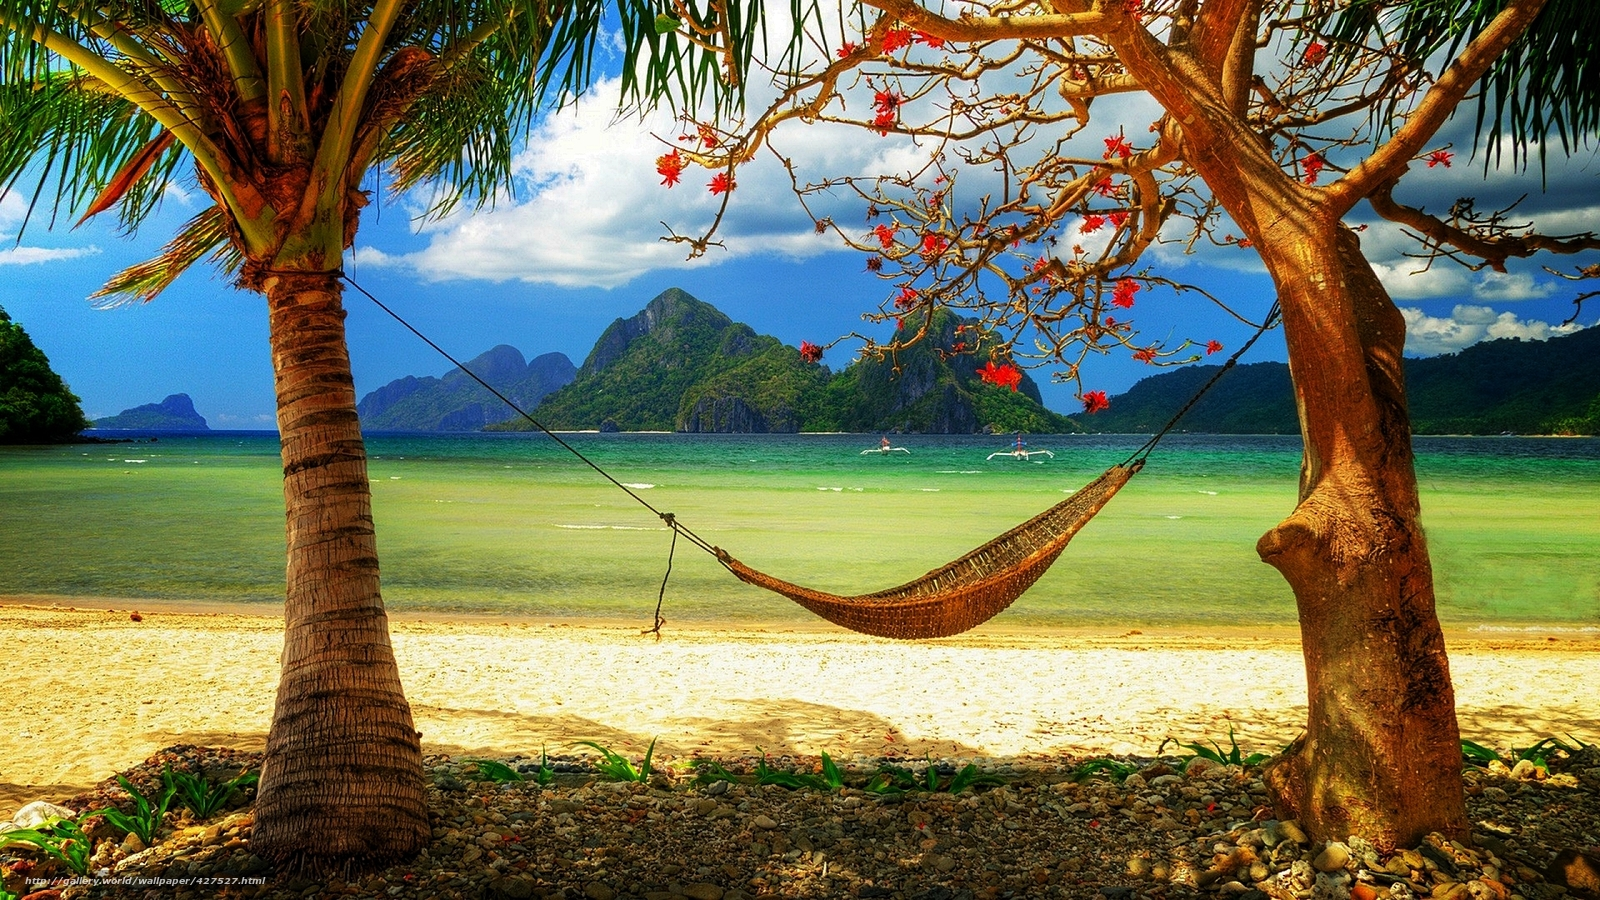 Wallpapers caribbean paradise sunshine sea beach hammock on 1600x900